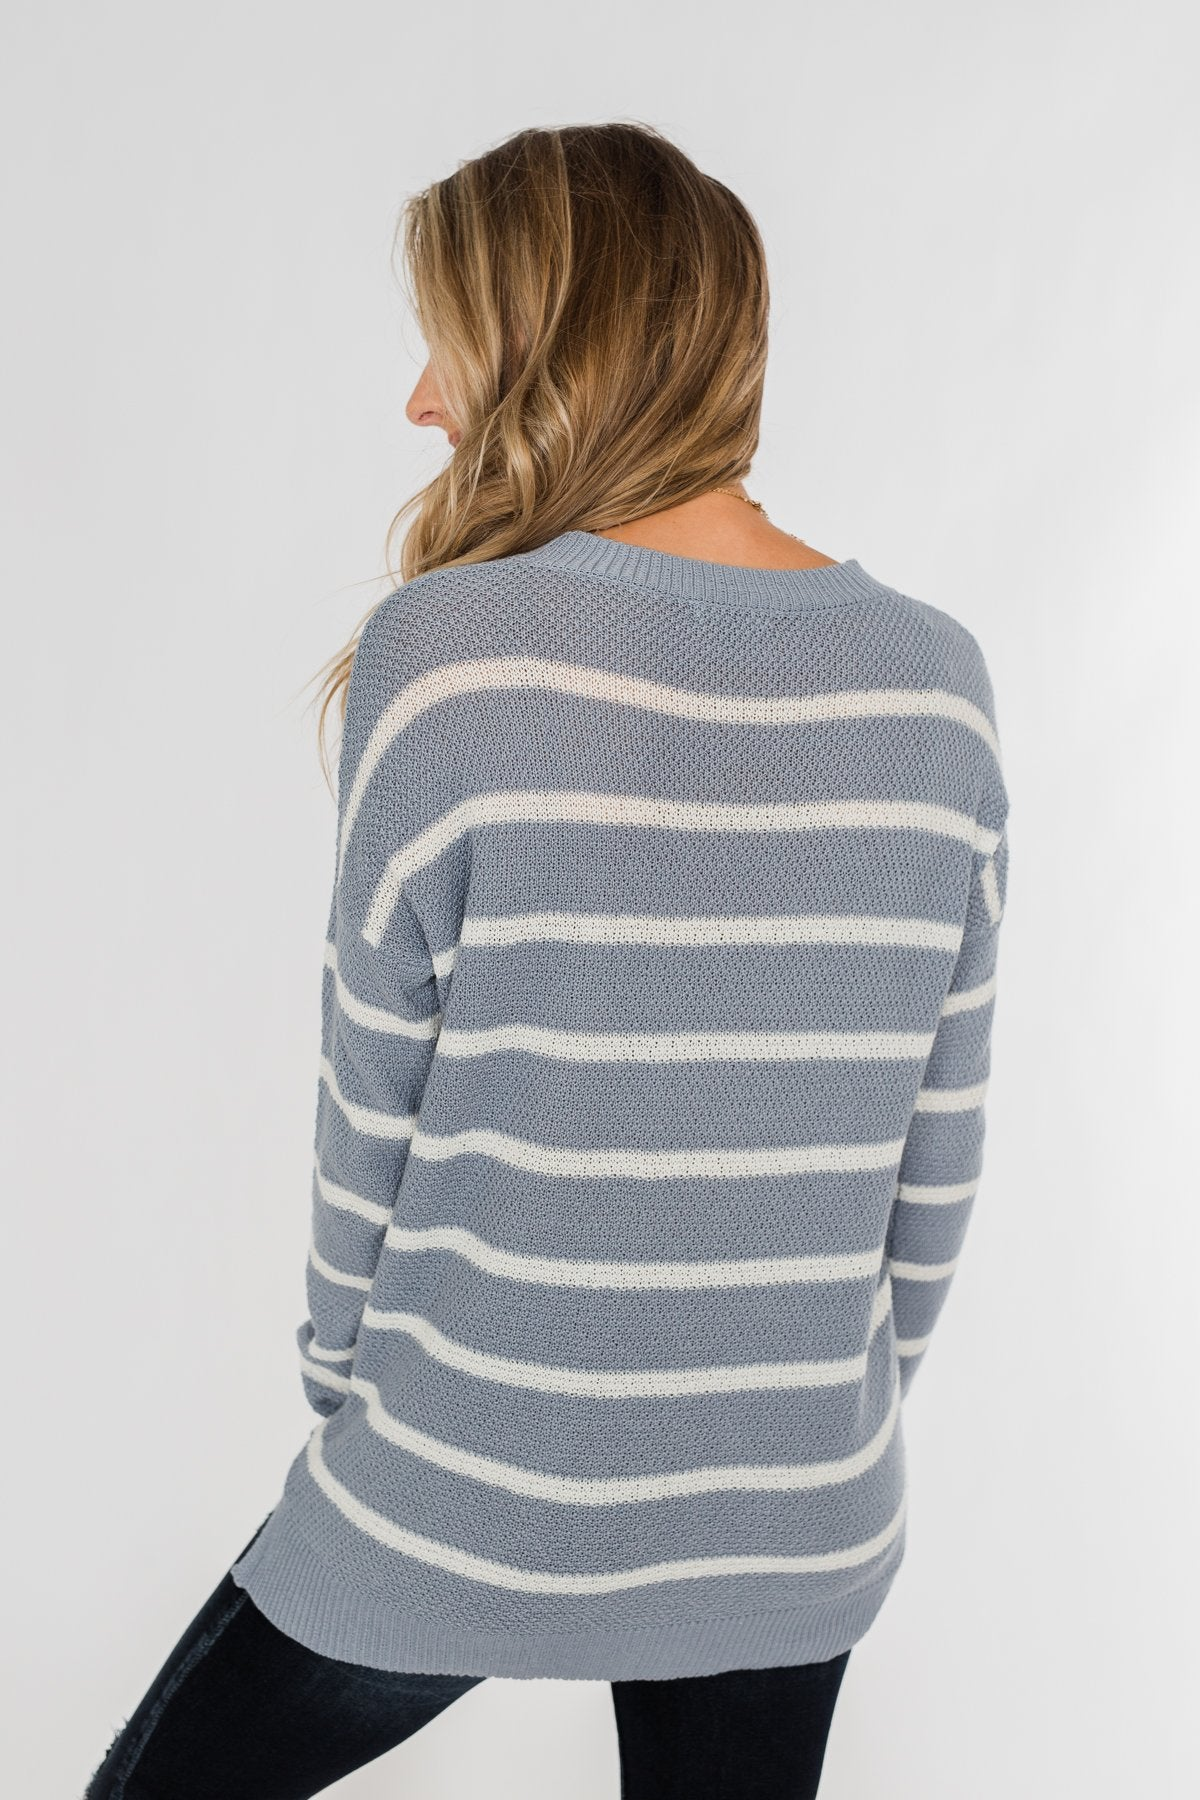 No Such Thing Striped Sweater- Periwinkle